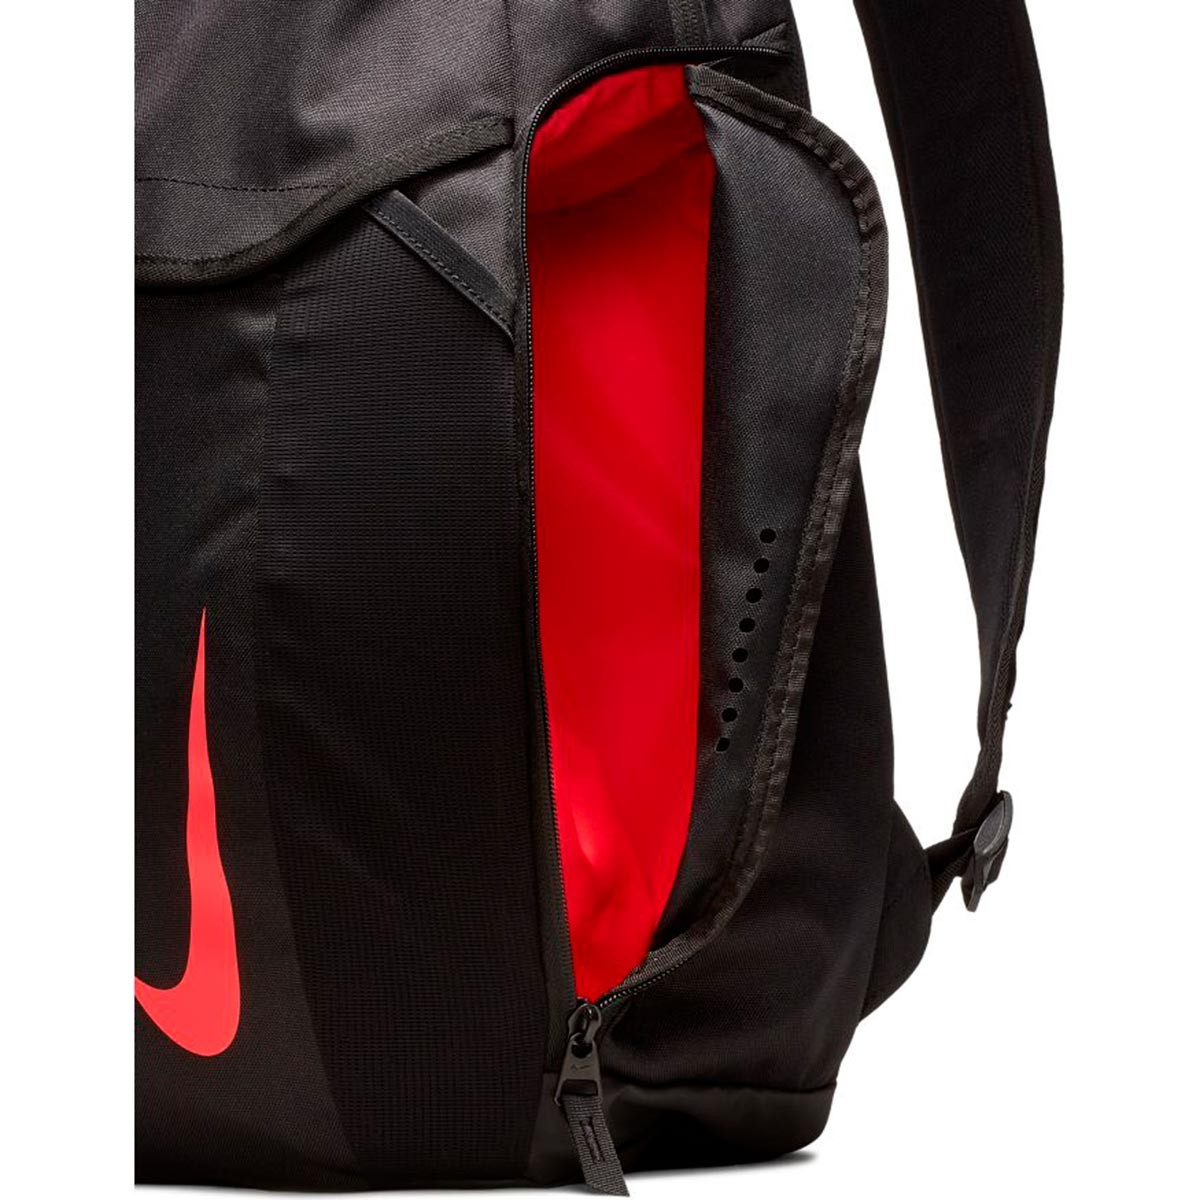 575870138 Backpack Nike Nike Academy Black-Red orbit - Leaked soccer